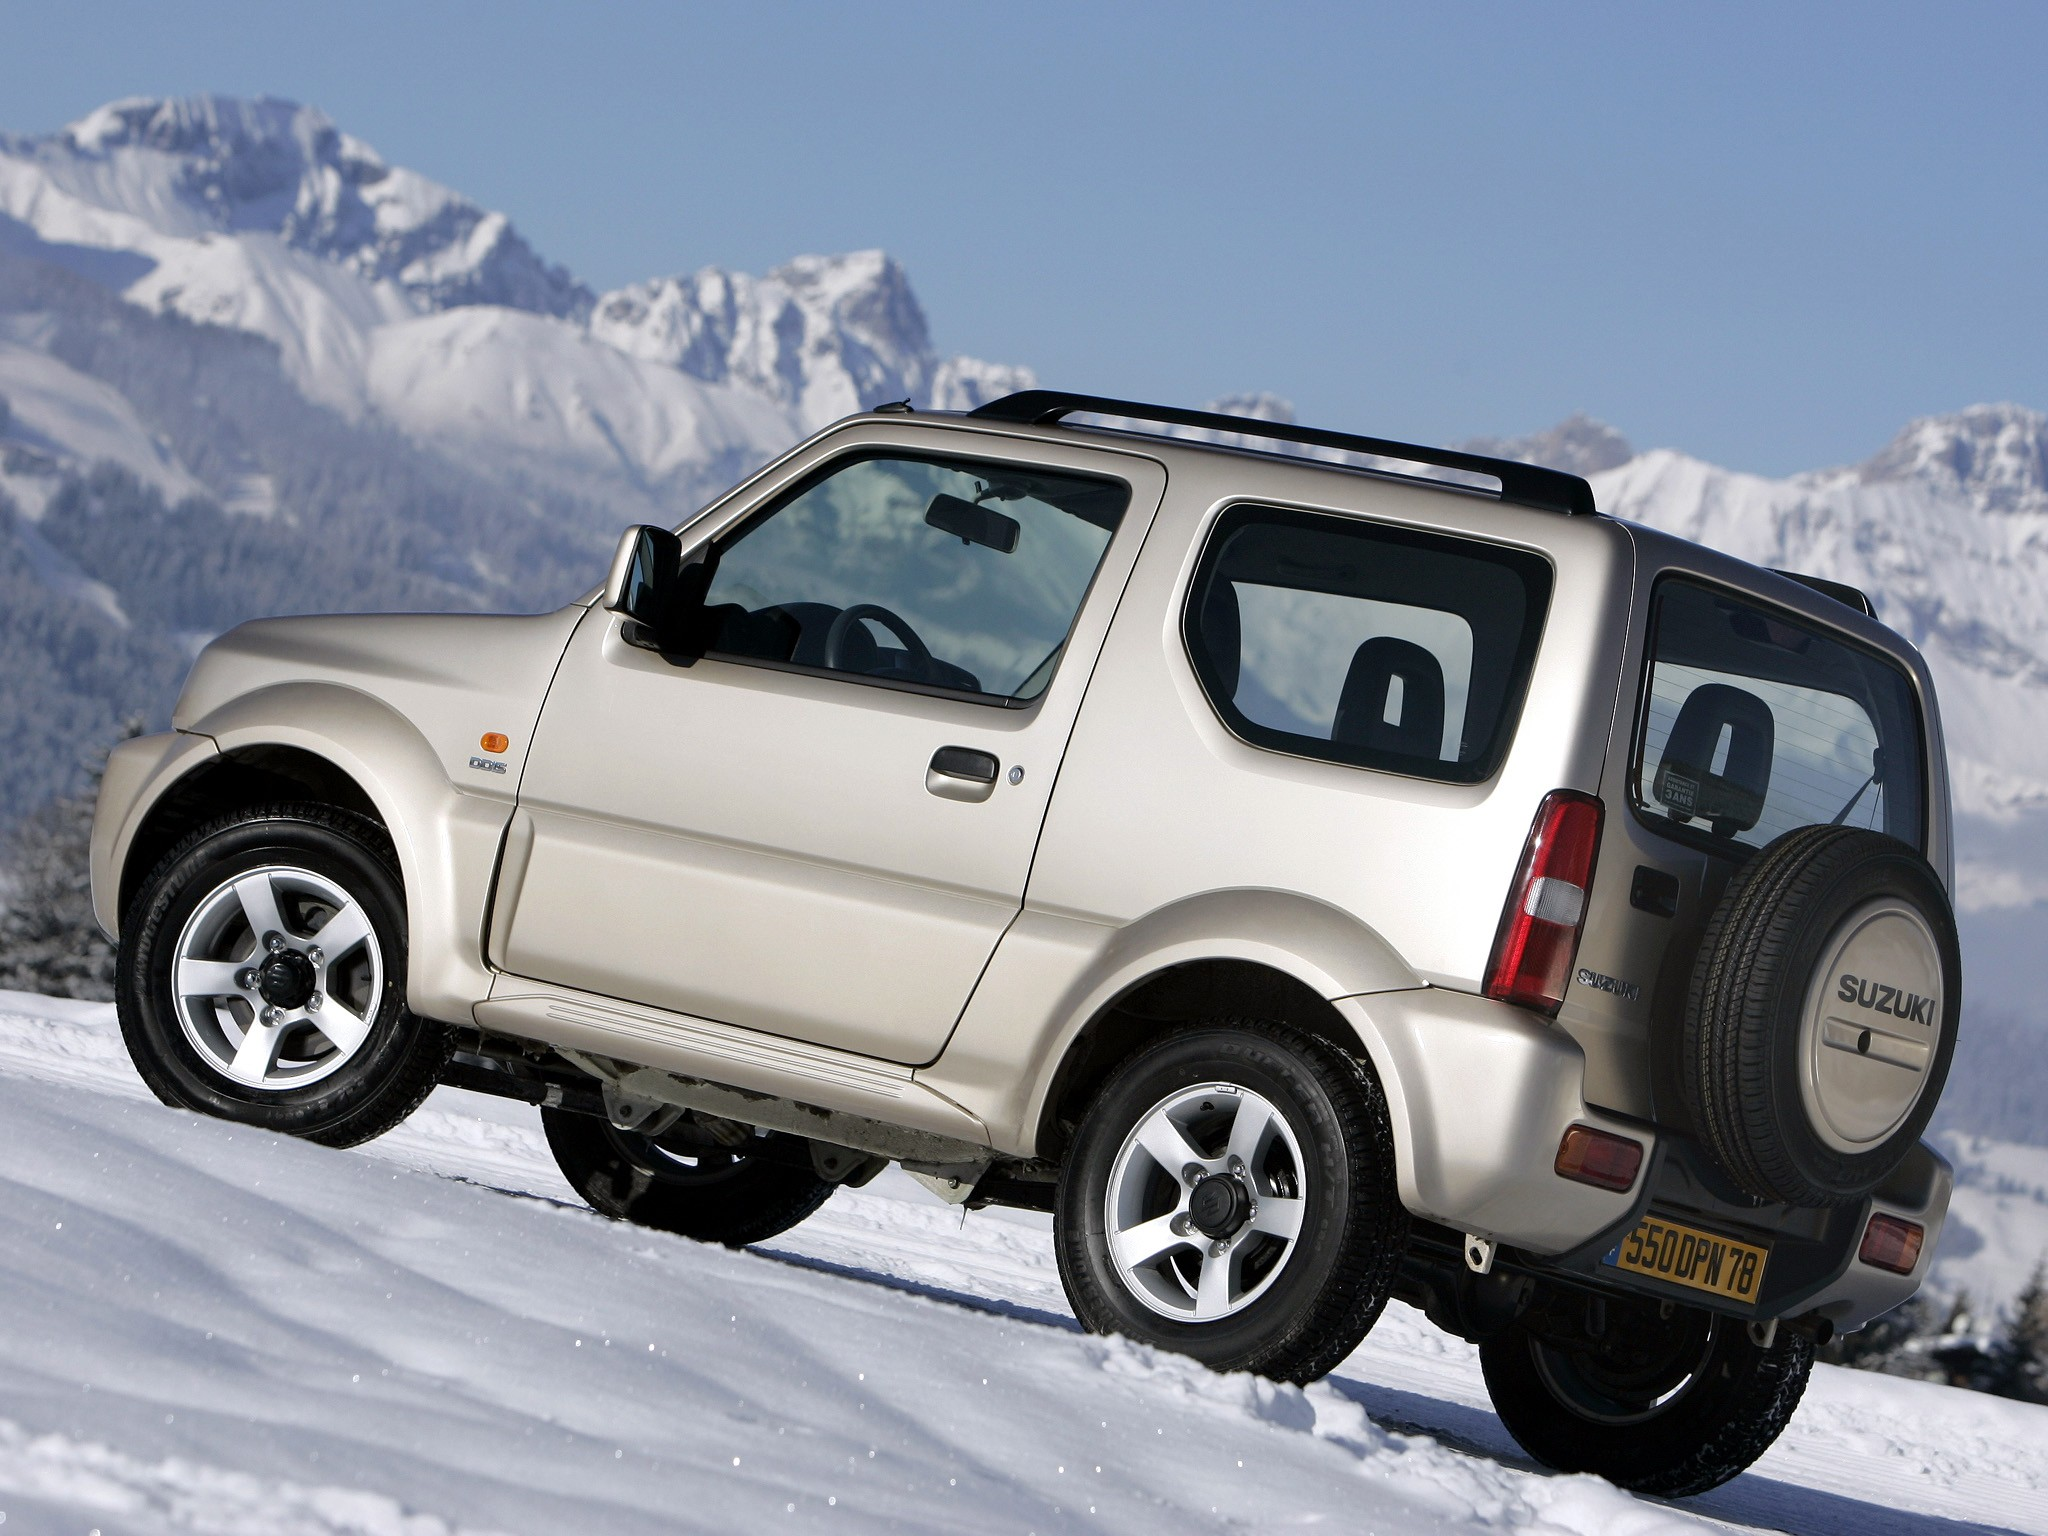 suzuki suv 4x4 jimny resmi mengaspal di indonesia the legend reborn. Black Bedroom Furniture Sets. Home Design Ideas